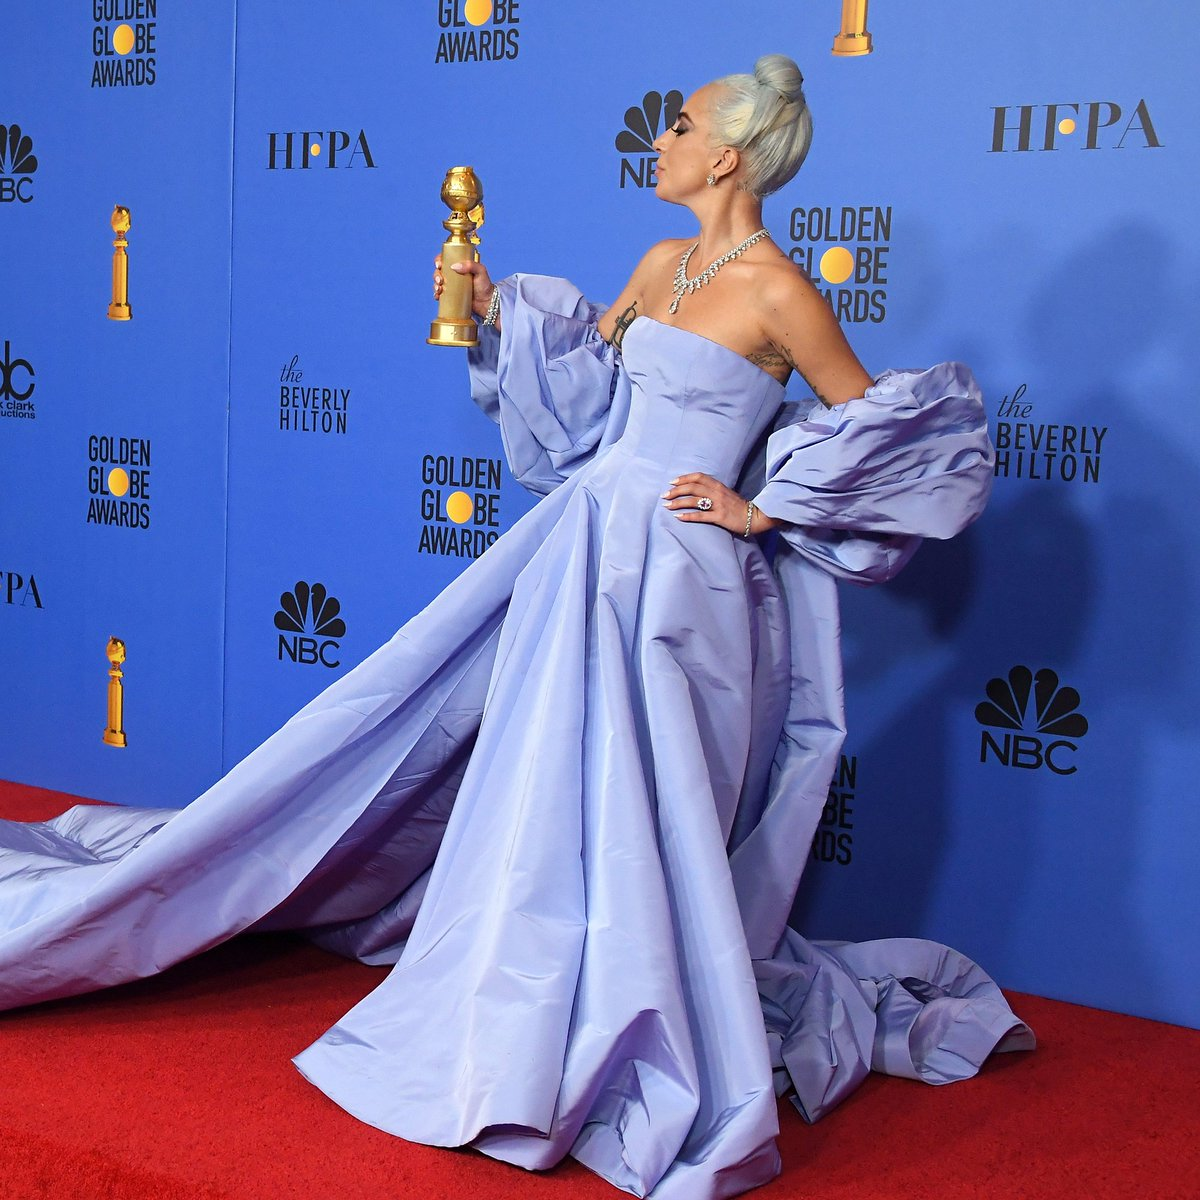 Win a #GoldenGlobe for Best Original Song... but make it fashion. @ladygaga